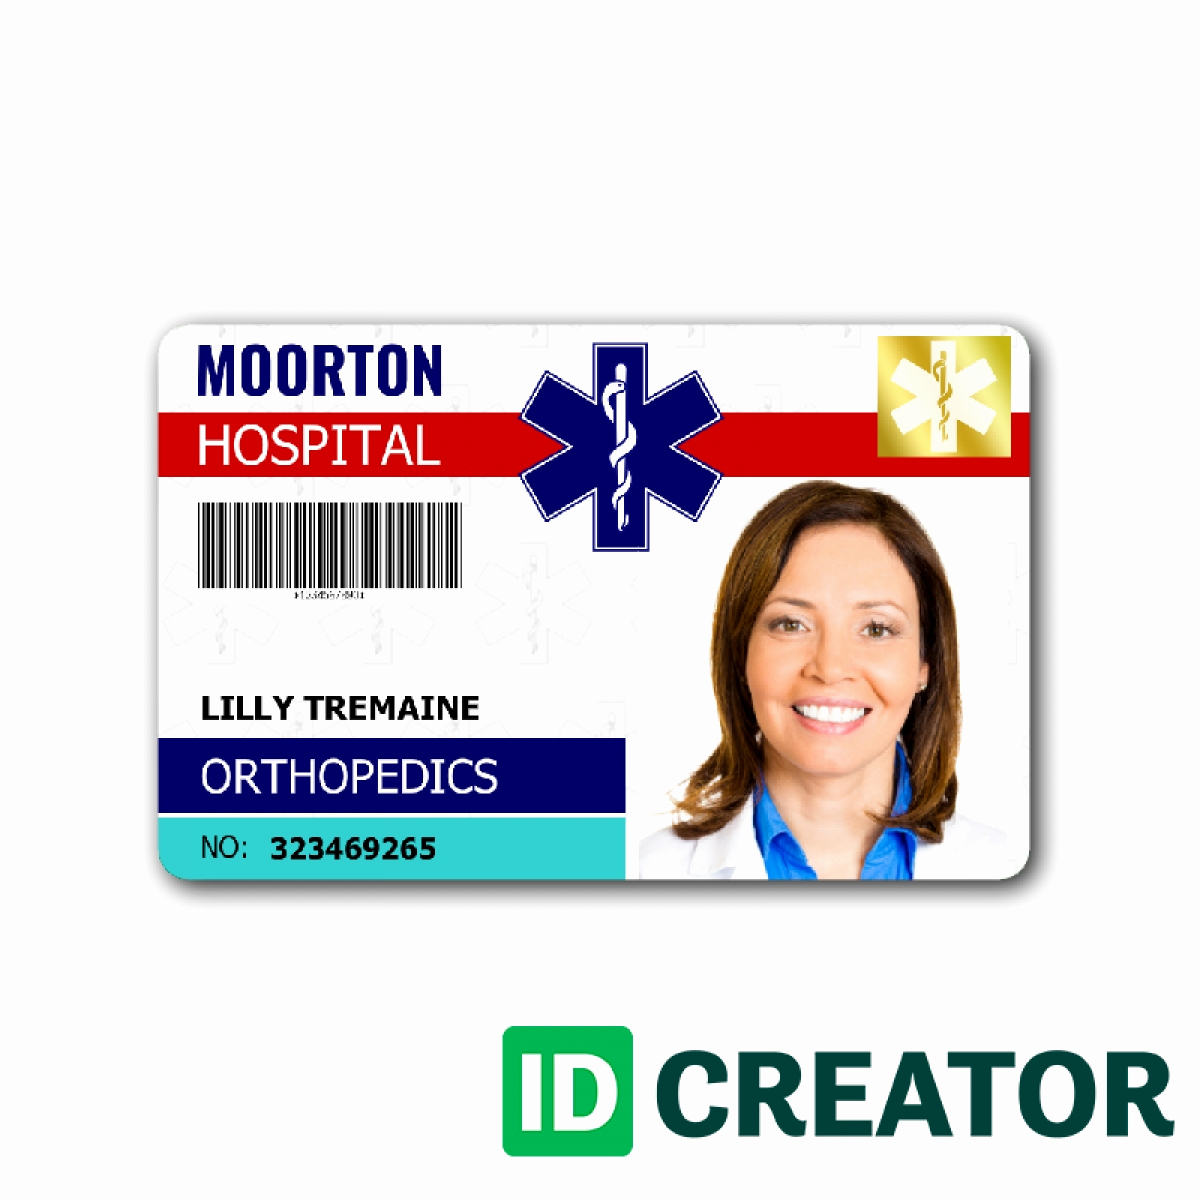 Identification Card Online Free Awesome Id Badge Template Beepmunk